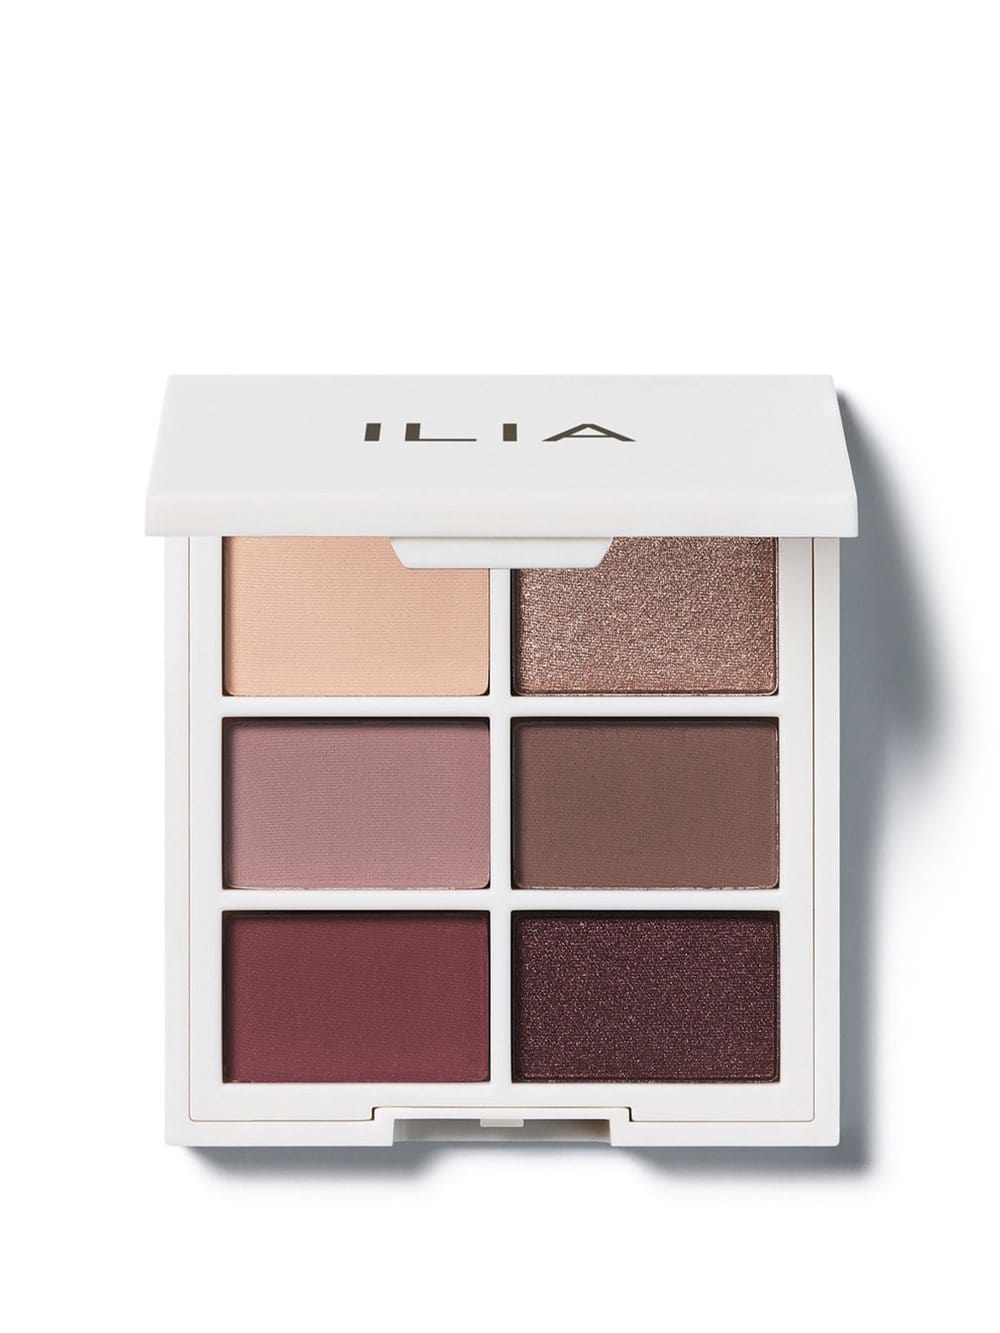 The Necessary Eyeshadow Palette - Cool Nude - Cheveux Heureux